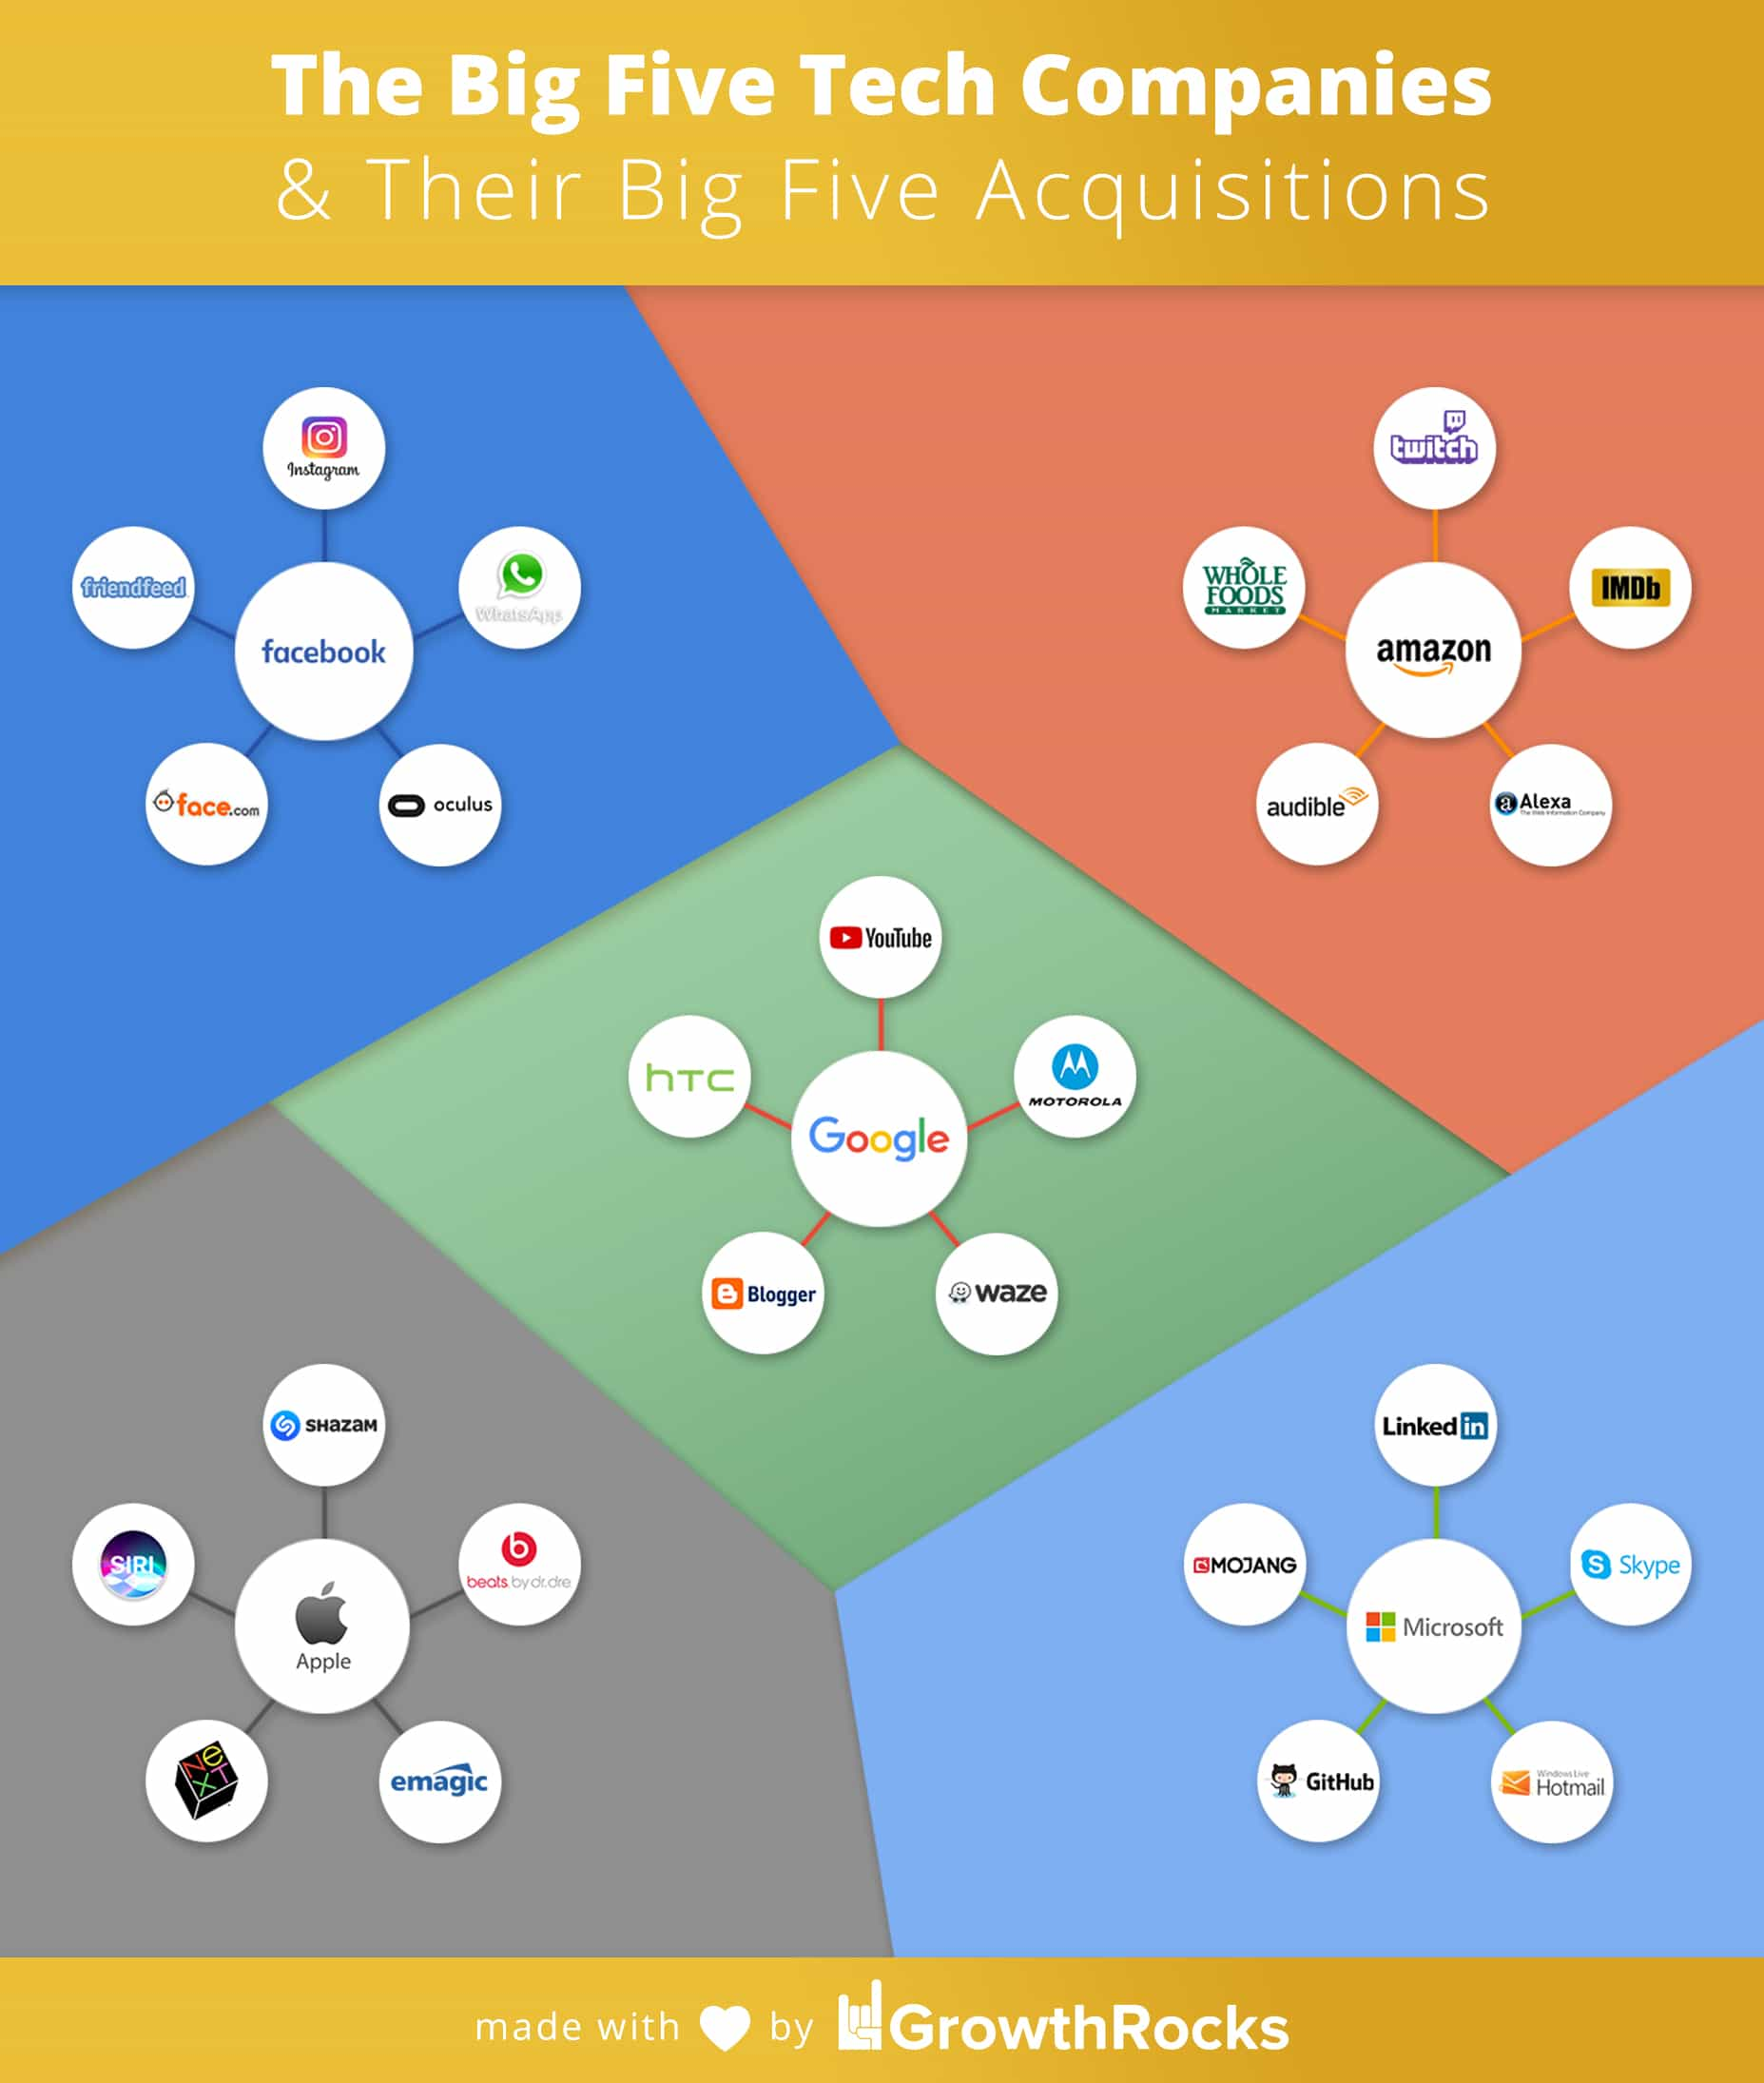 How To Draw A Perfect Circle 2009 Online the big five tech companies & their big five acquisitions